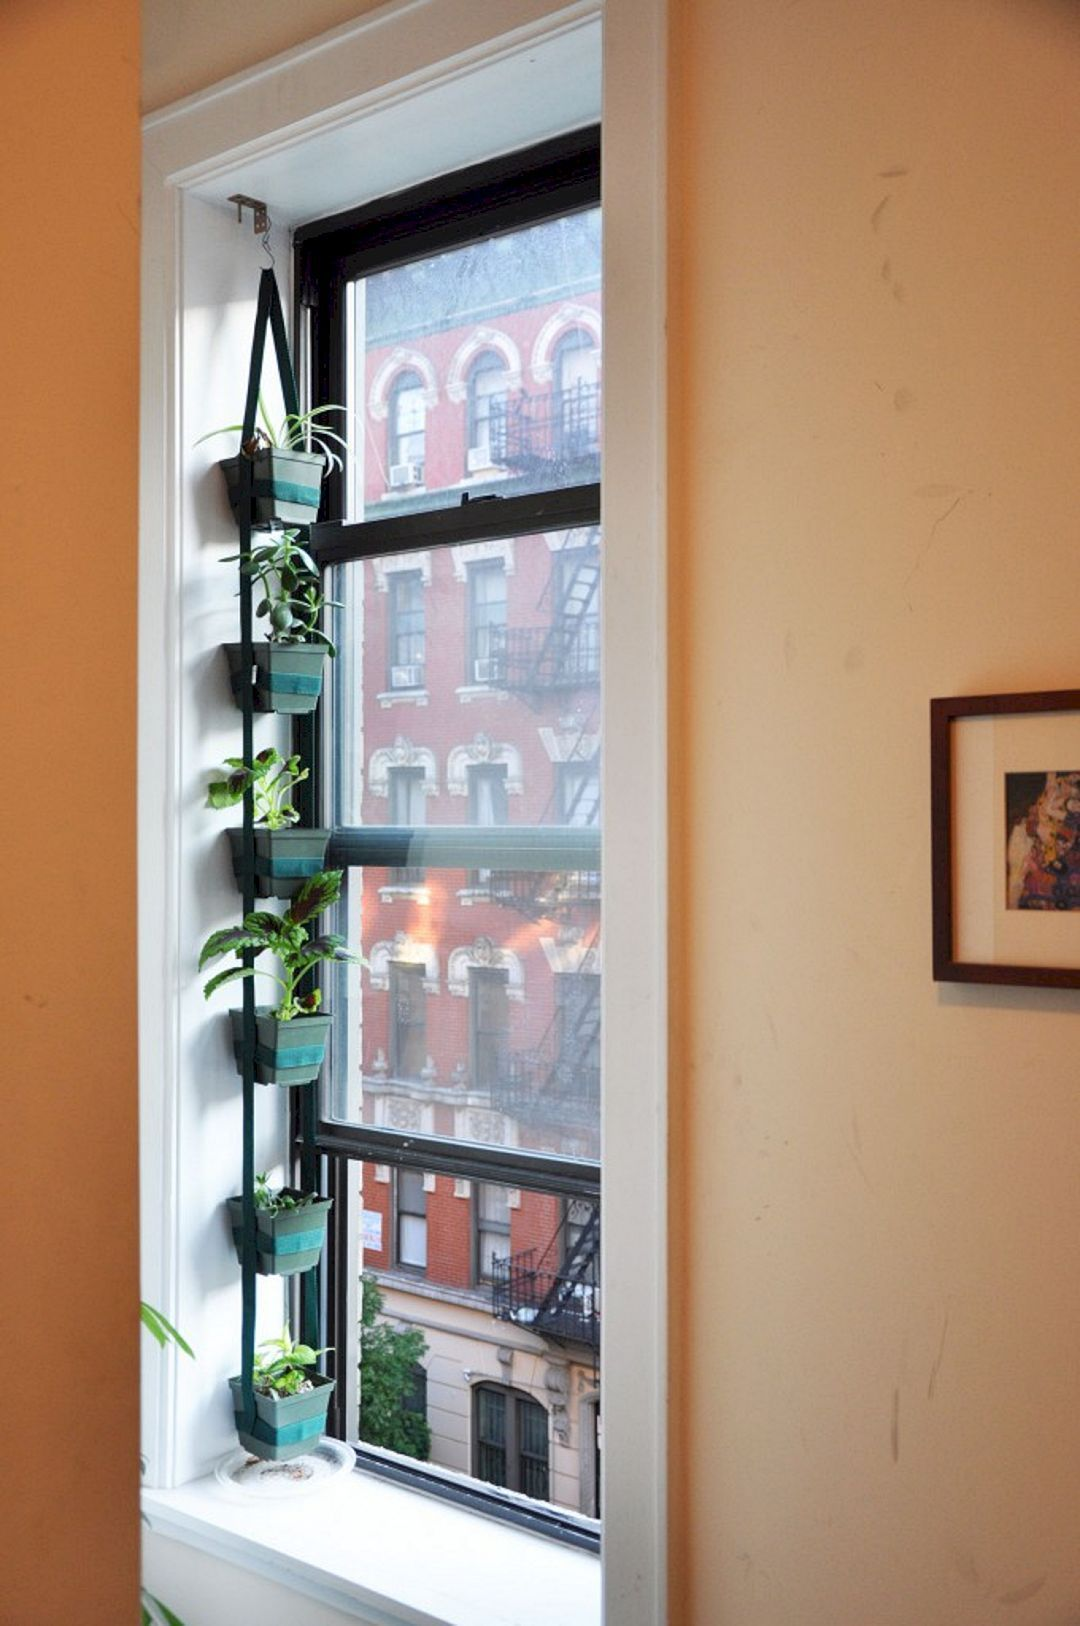 The Best Indoor Herb Garden Ideas For Your Home And Apartment No